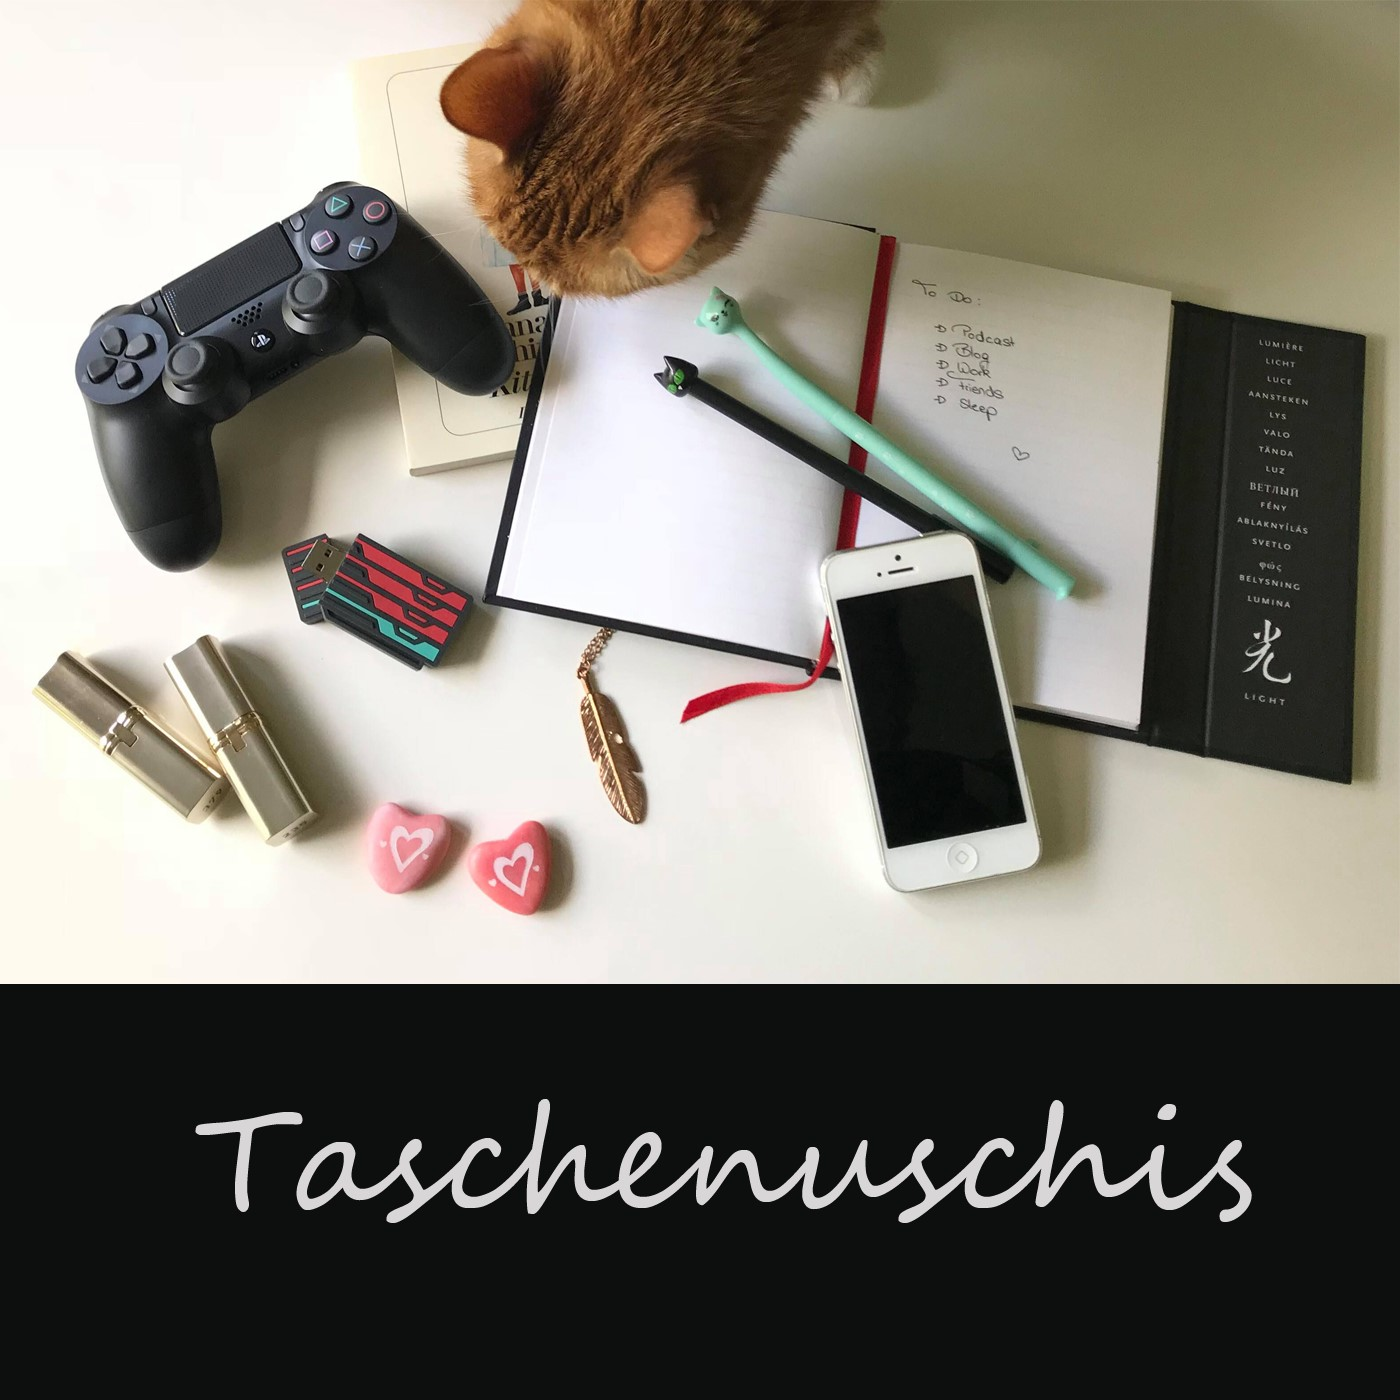 Tussiklatsch 11: Catfight-Uschis